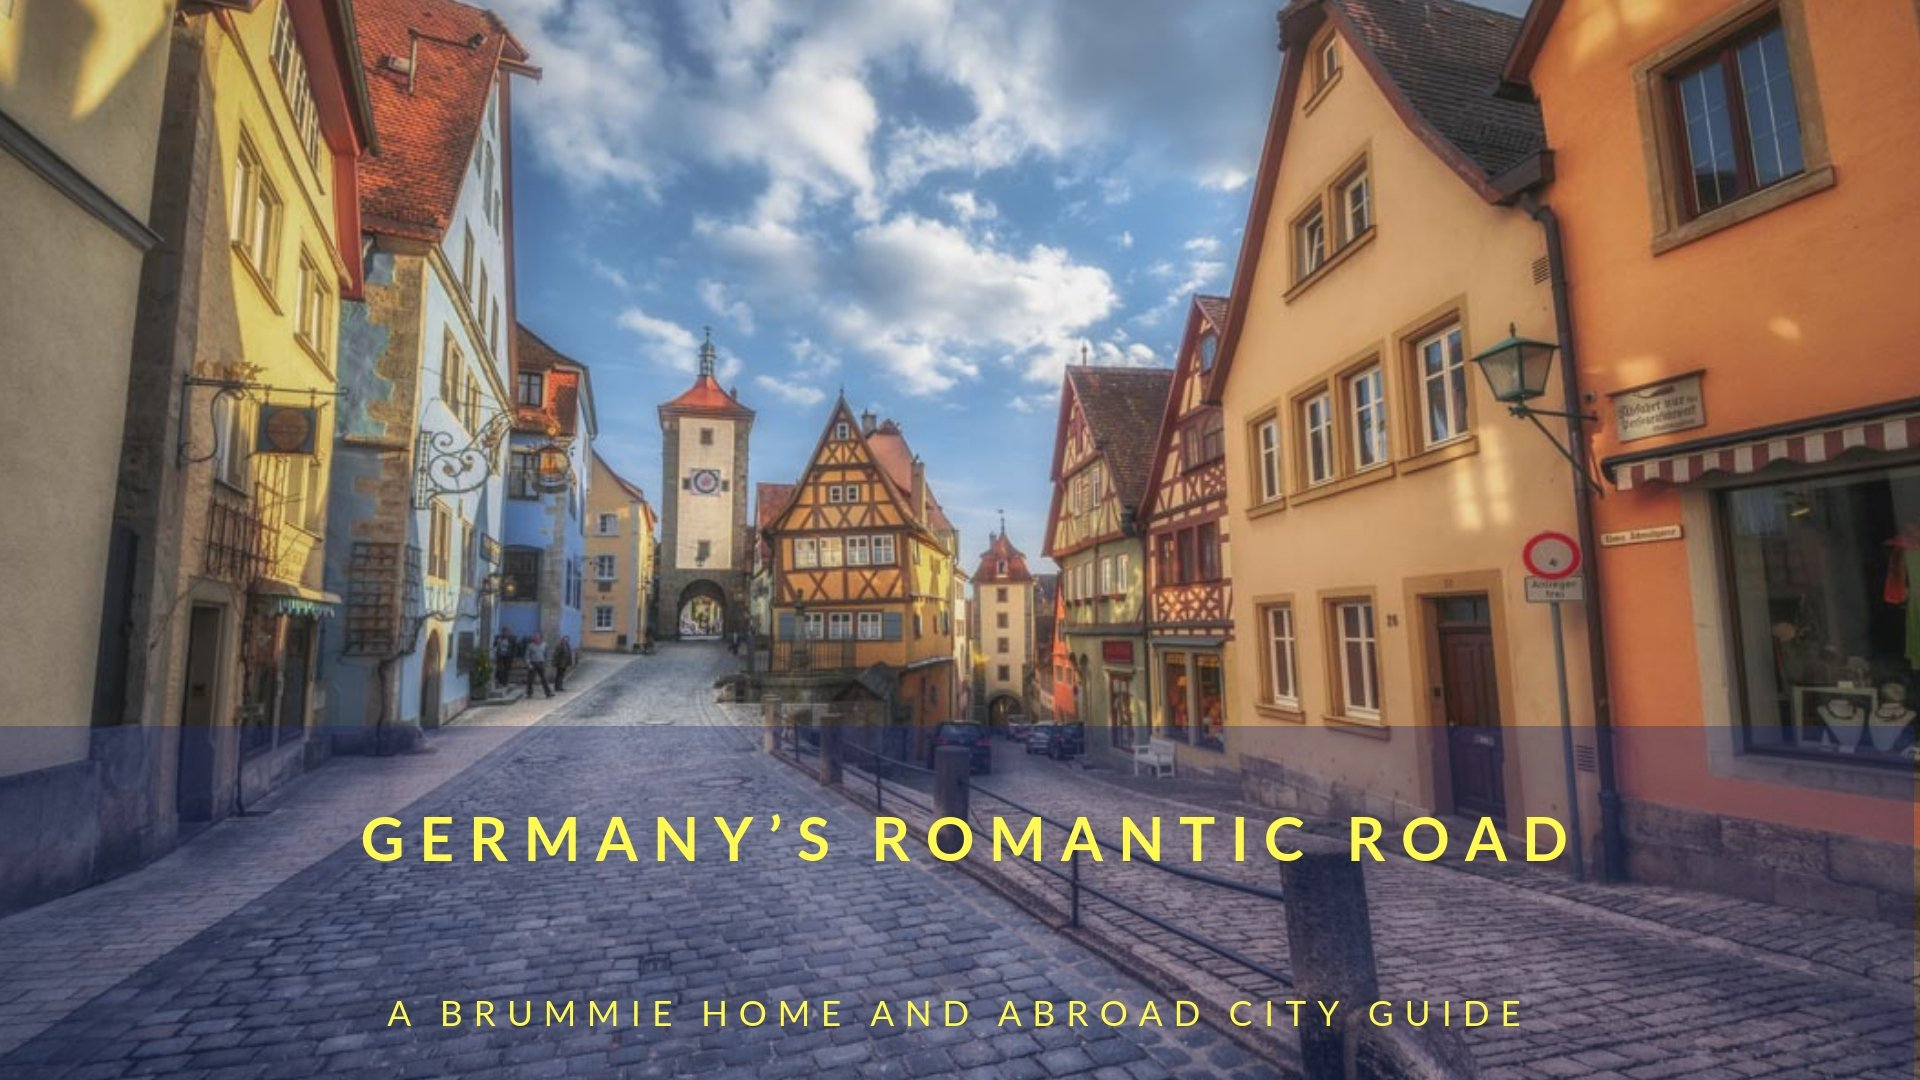 A Brummie Home and Abroad_s guide to Germany_s Romantic Road